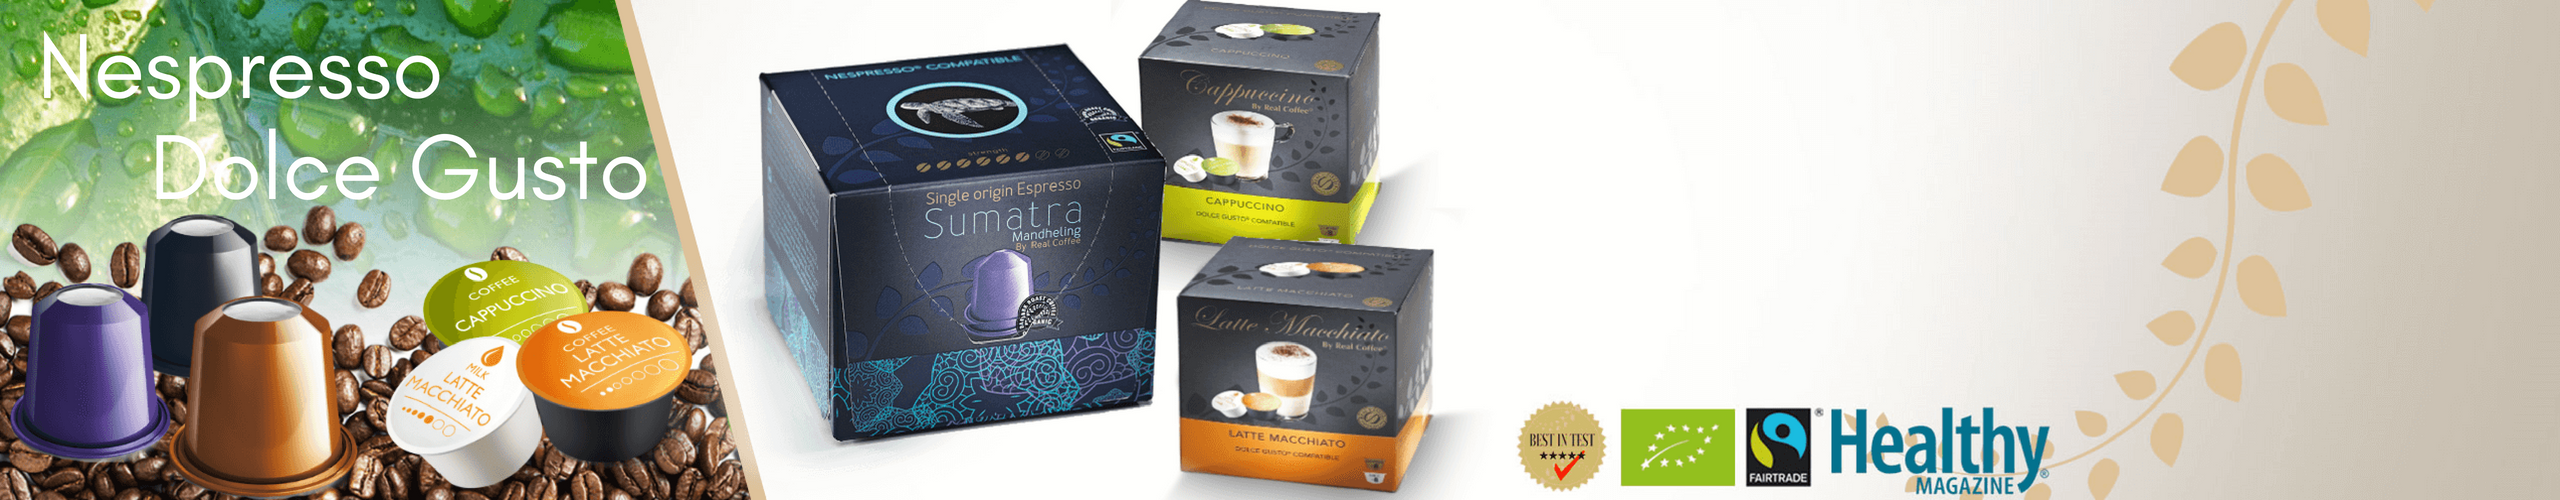 Recommended by Healthy Magazine, CoffeeBlog.co.uk and Thrive